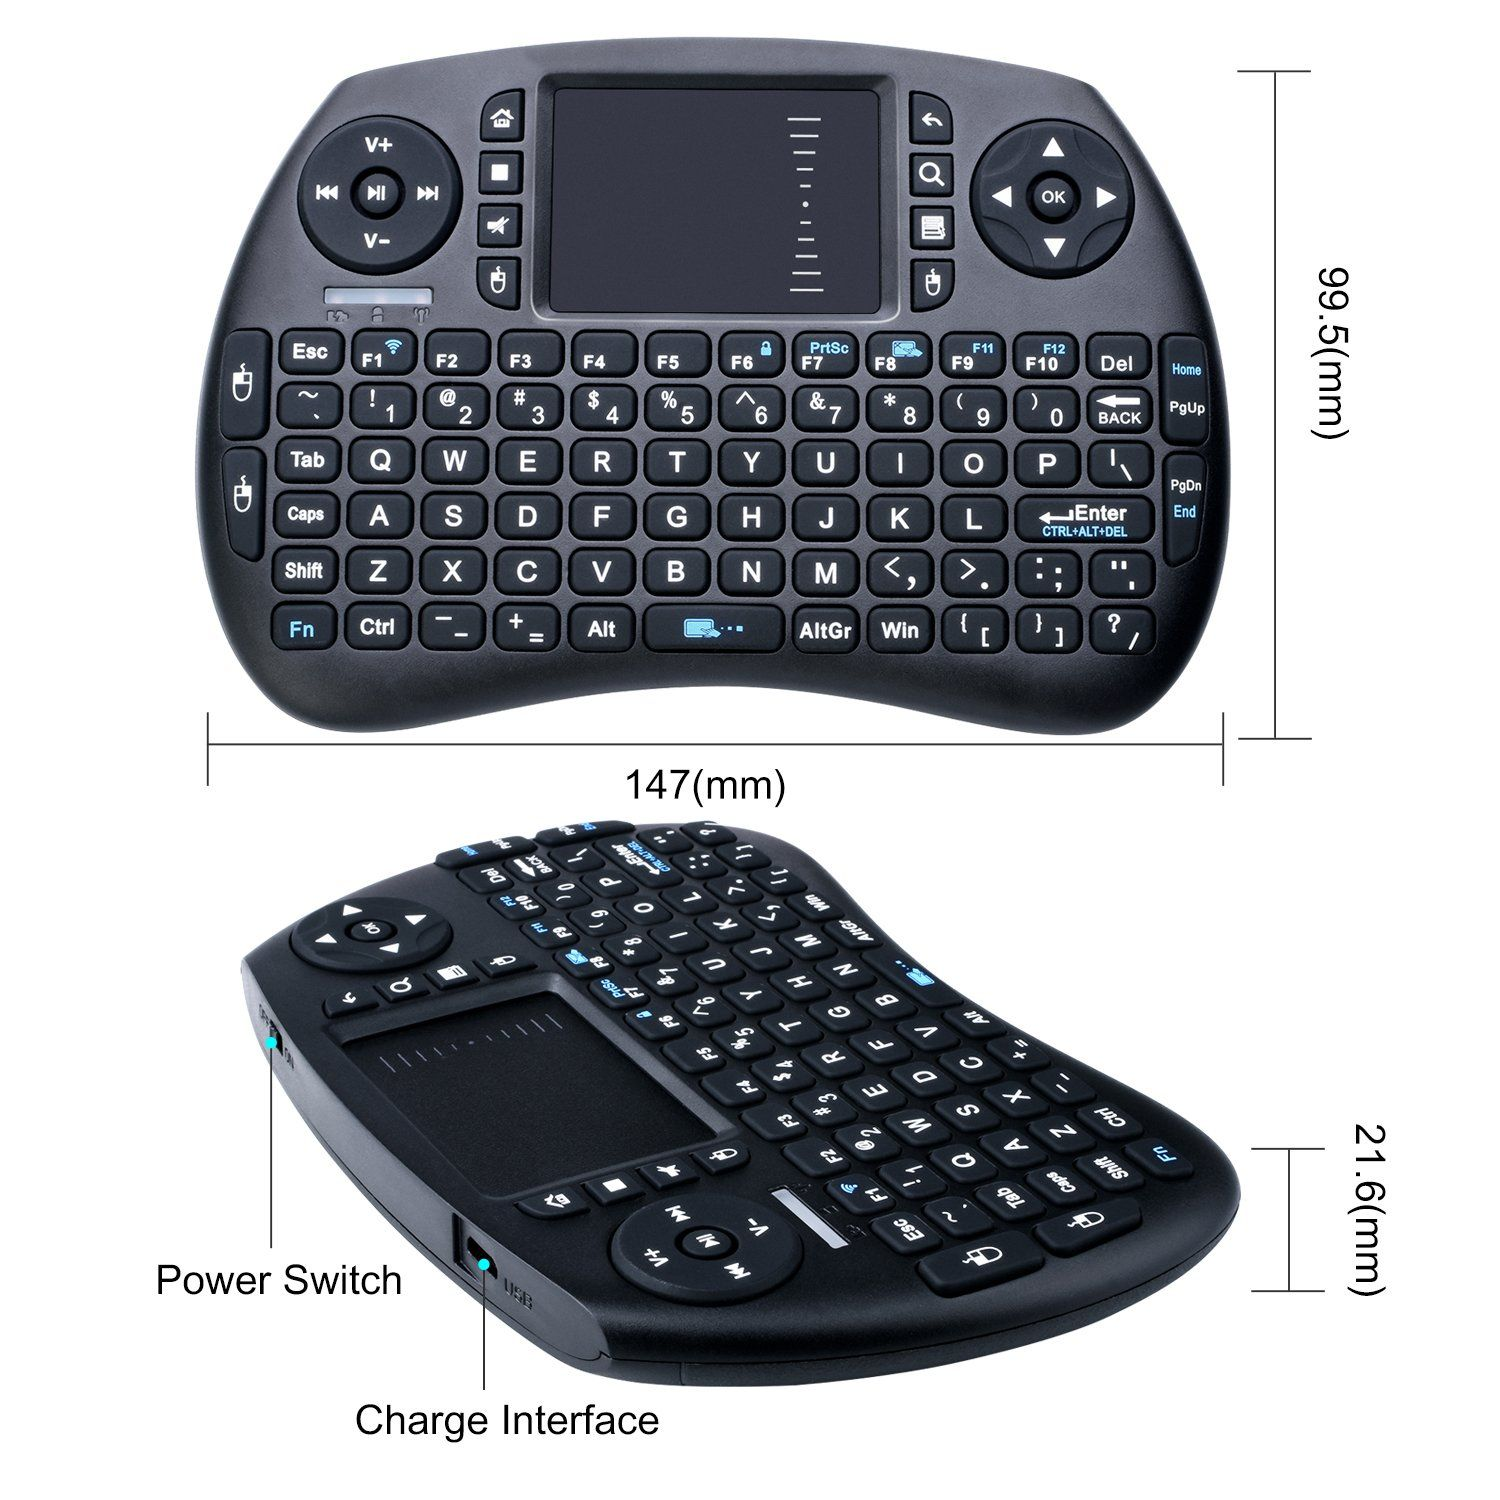 407e53dbd48 2.4GHz Wireless Keyboard with Mouse Longruner Mini Touchpad Rechargeable  Combos for Raspberry Pi 3 2